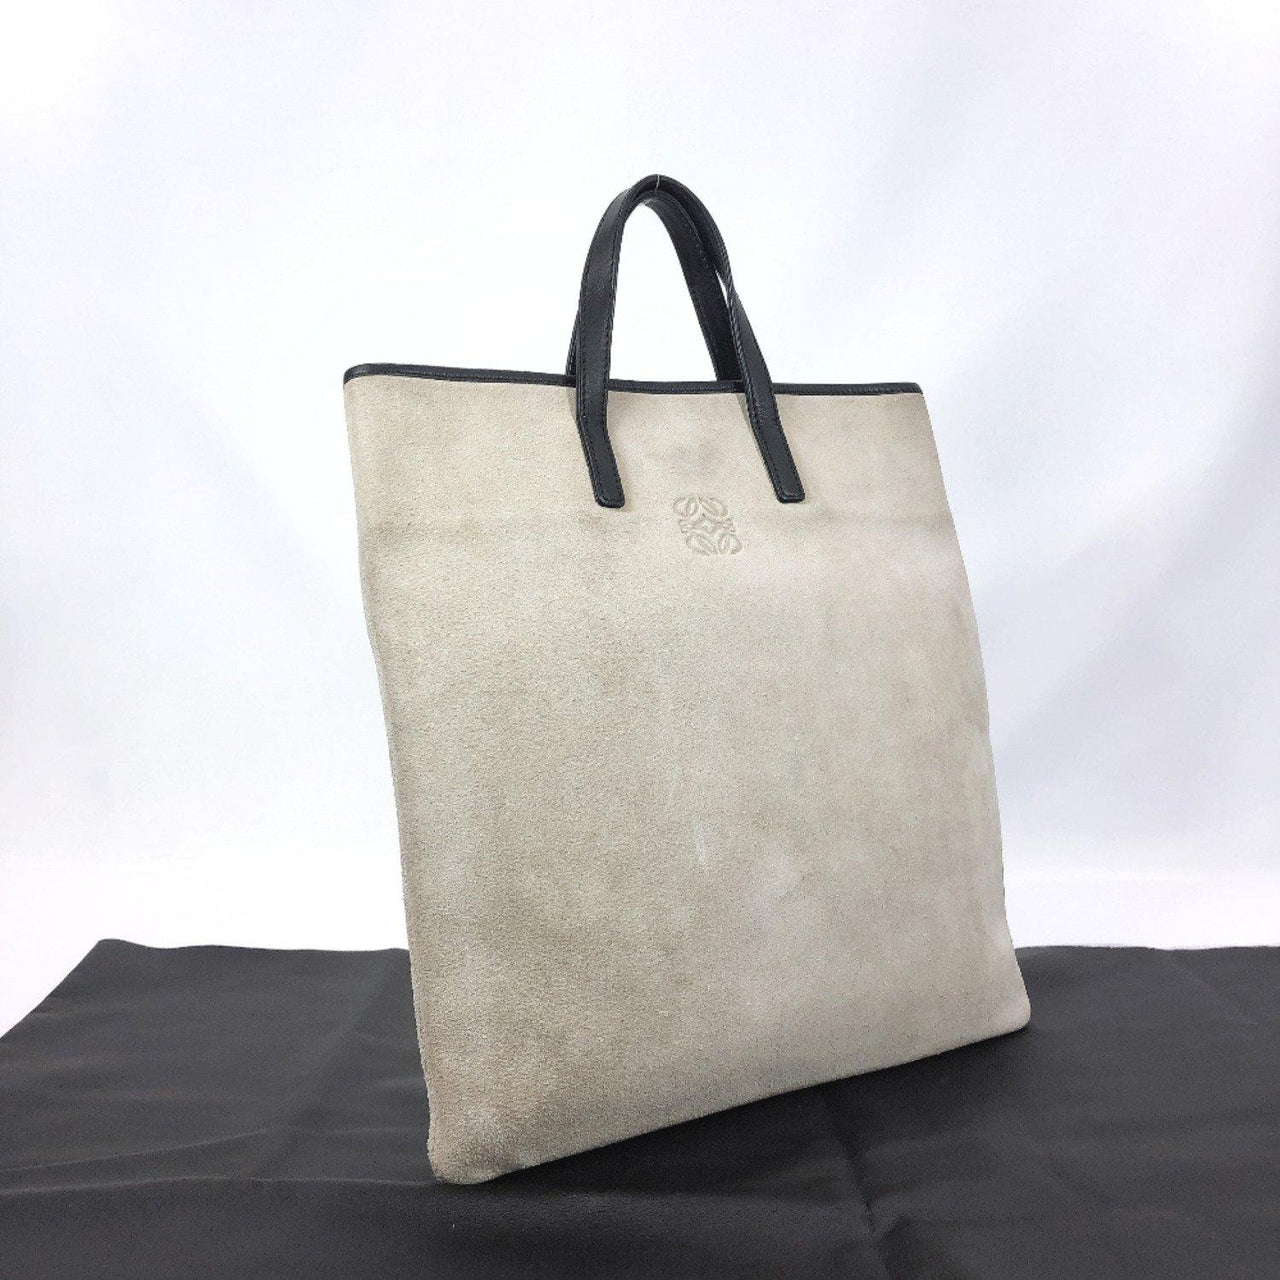 LOEWE Tote Bag L29 anagram Suede/leather beige Women Used